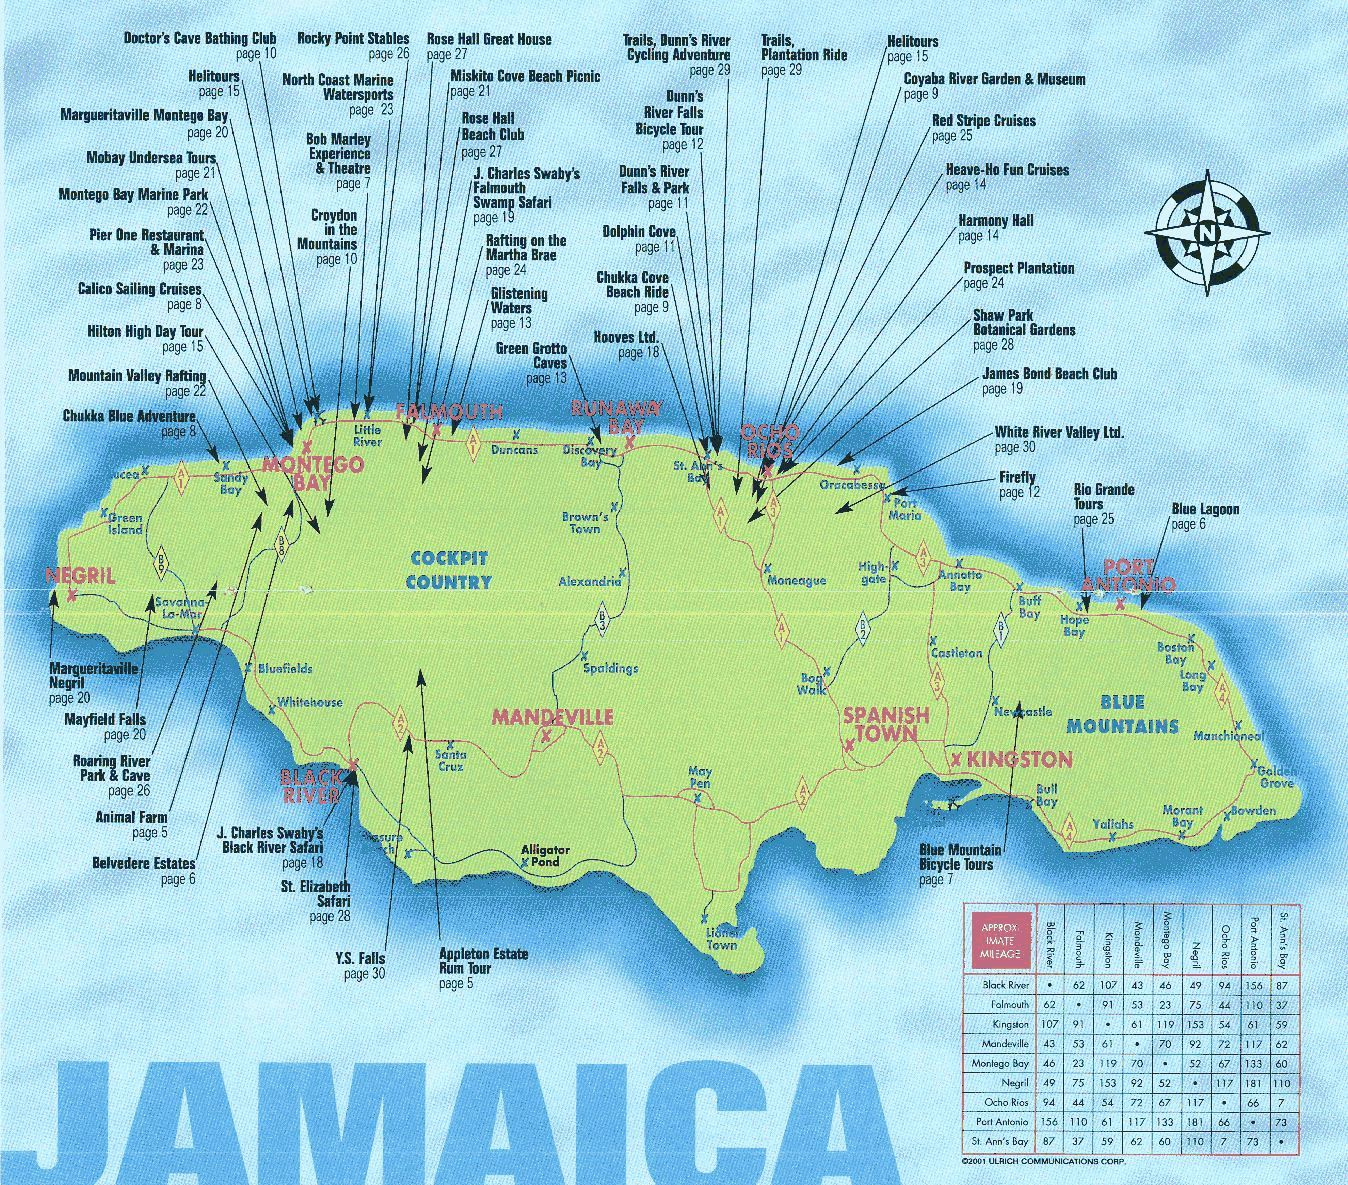 Jamaican Sights